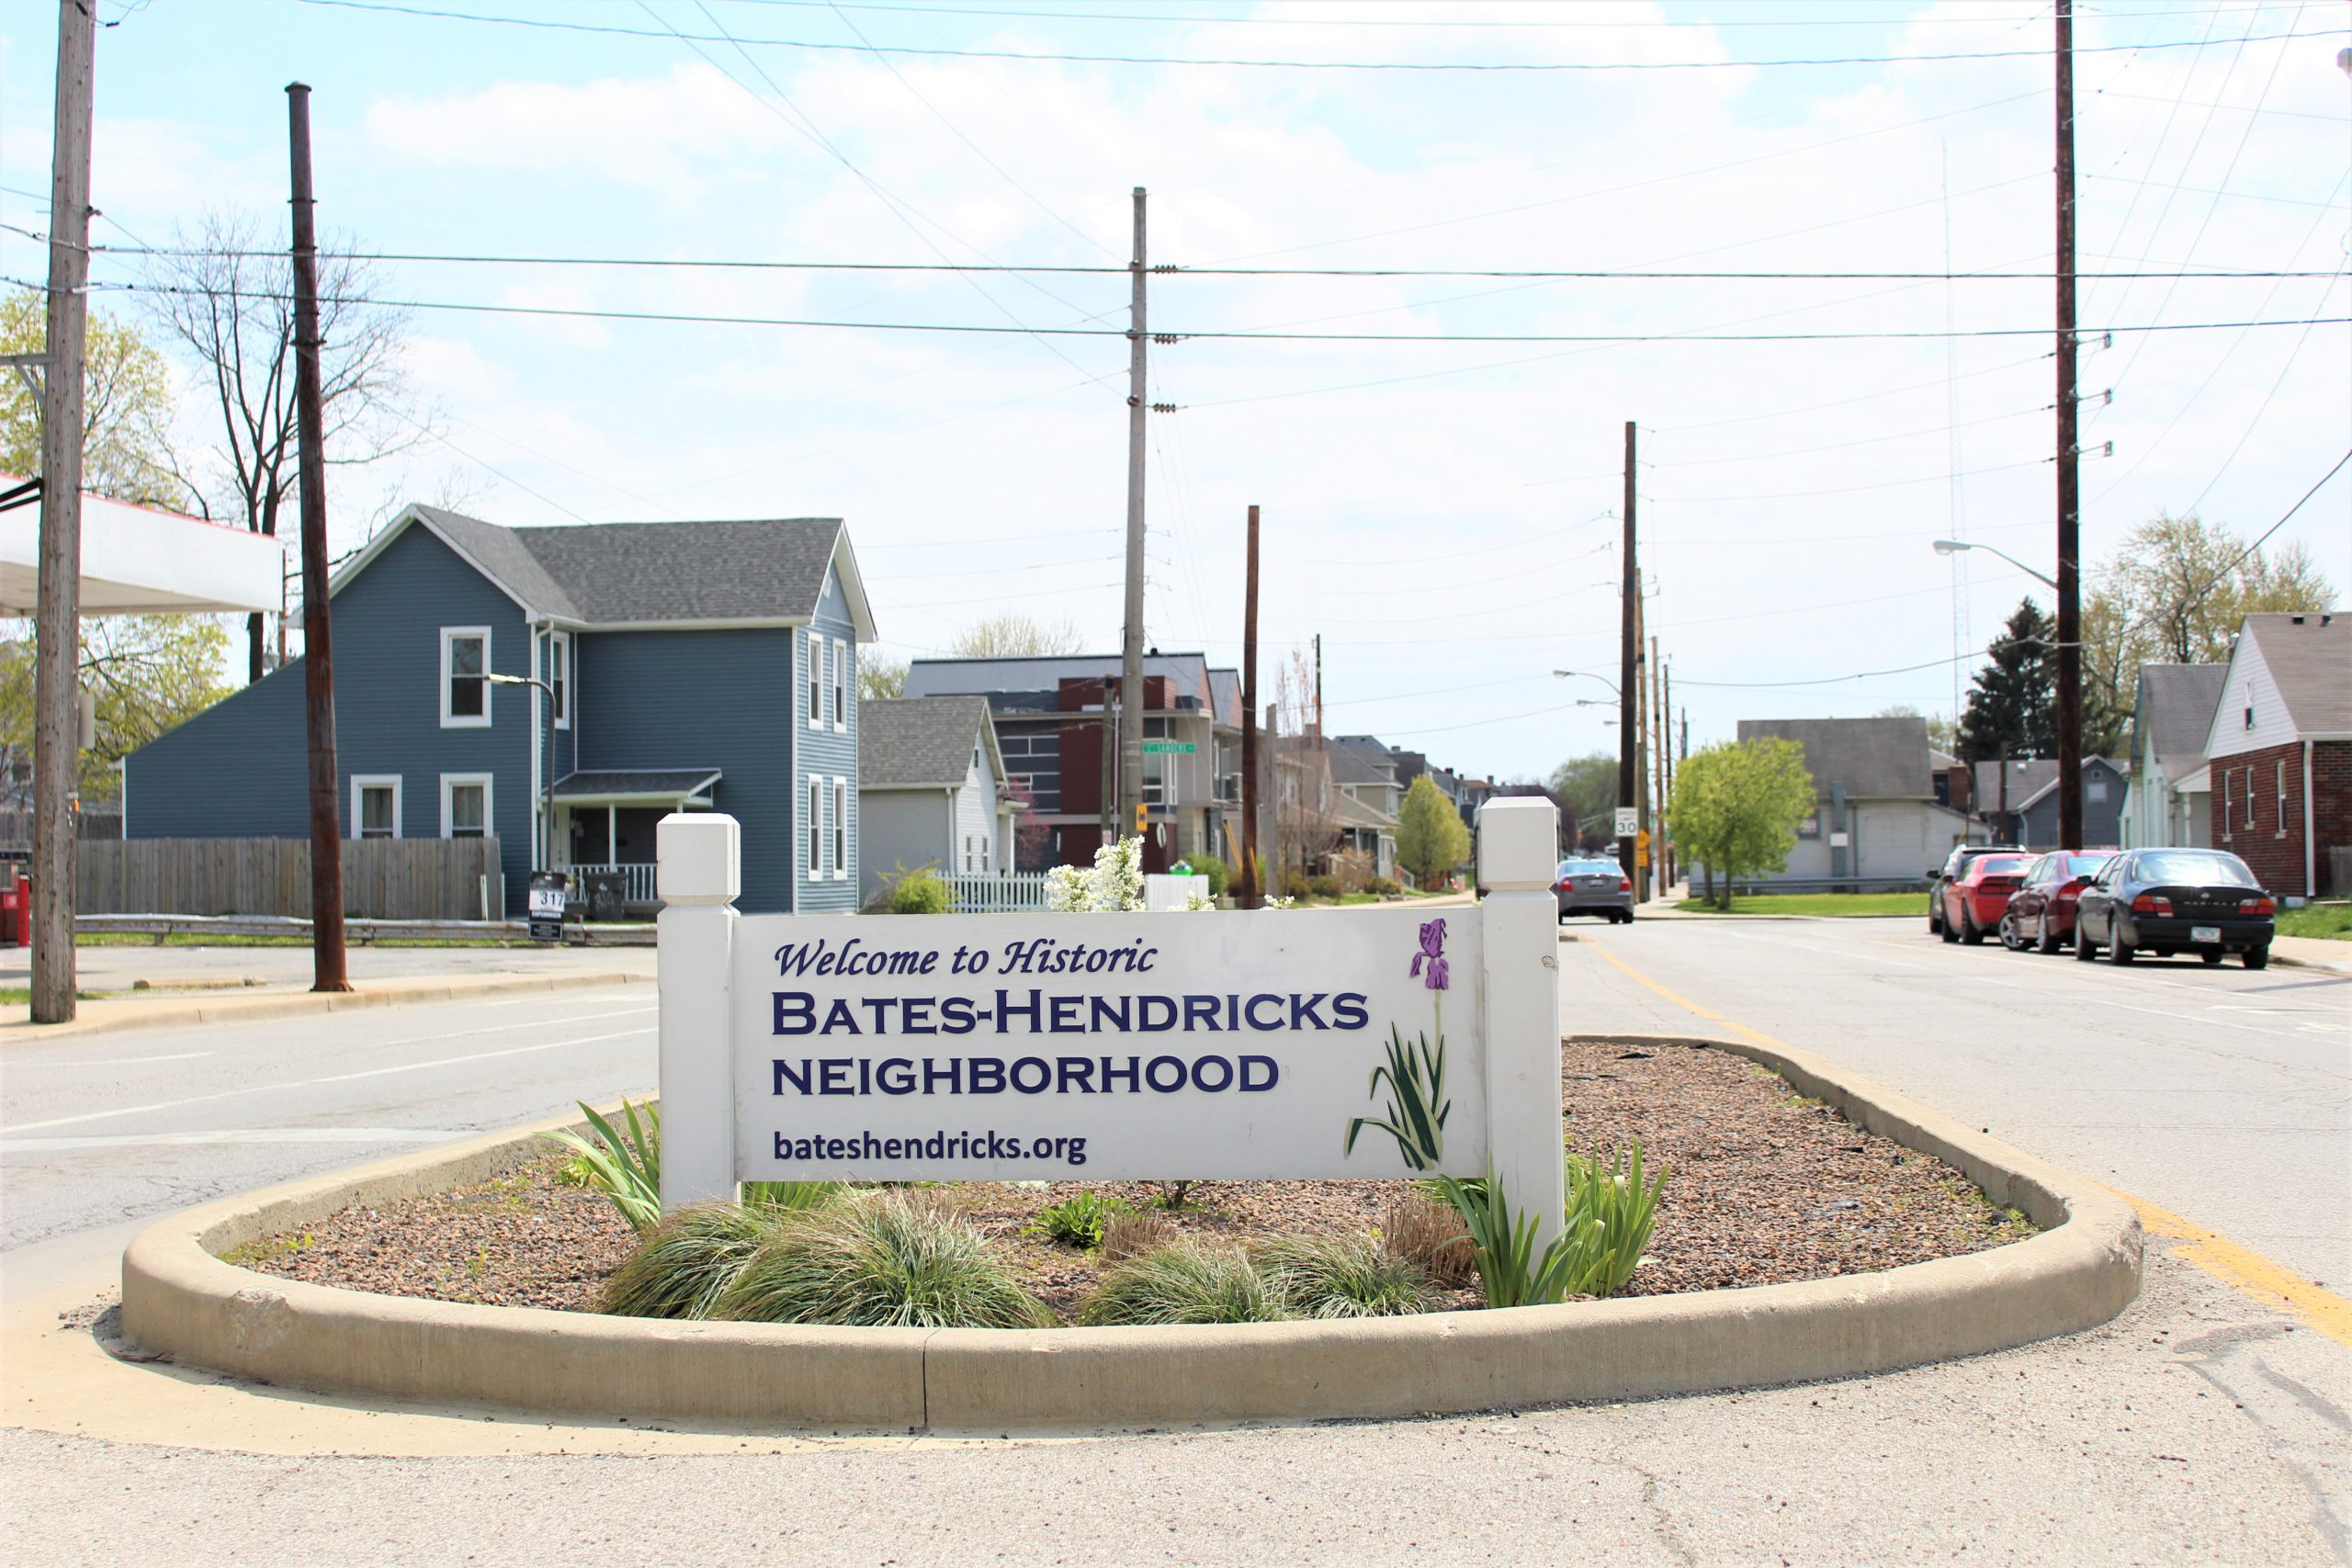 Bates-Hendricks entryway sign